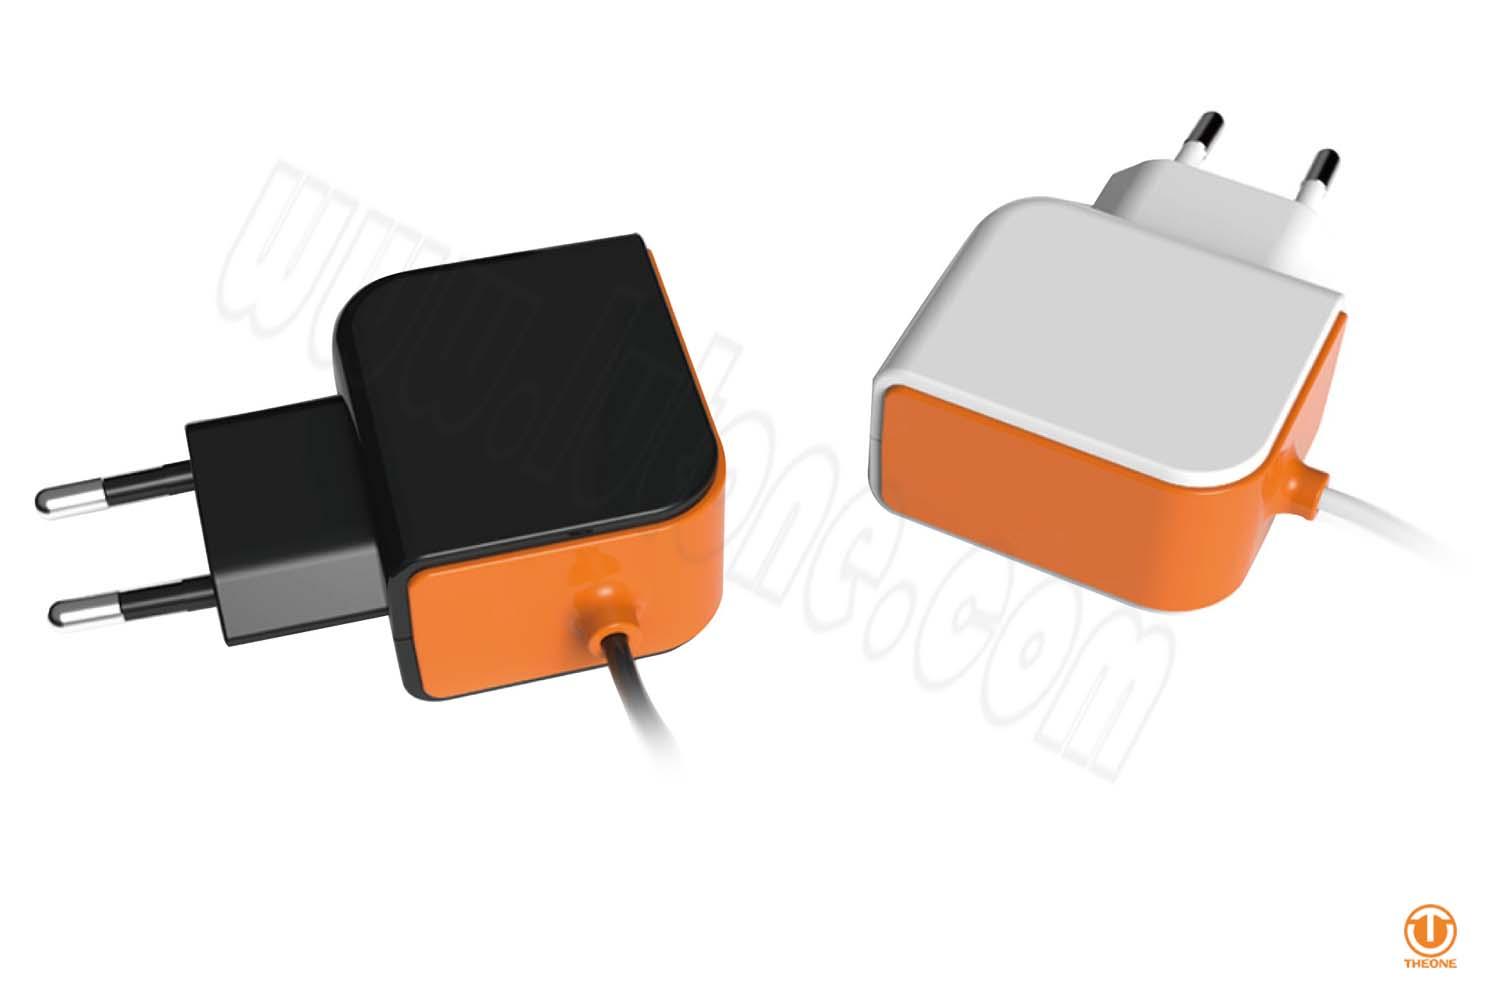 tc02b1-1 wired wall charger